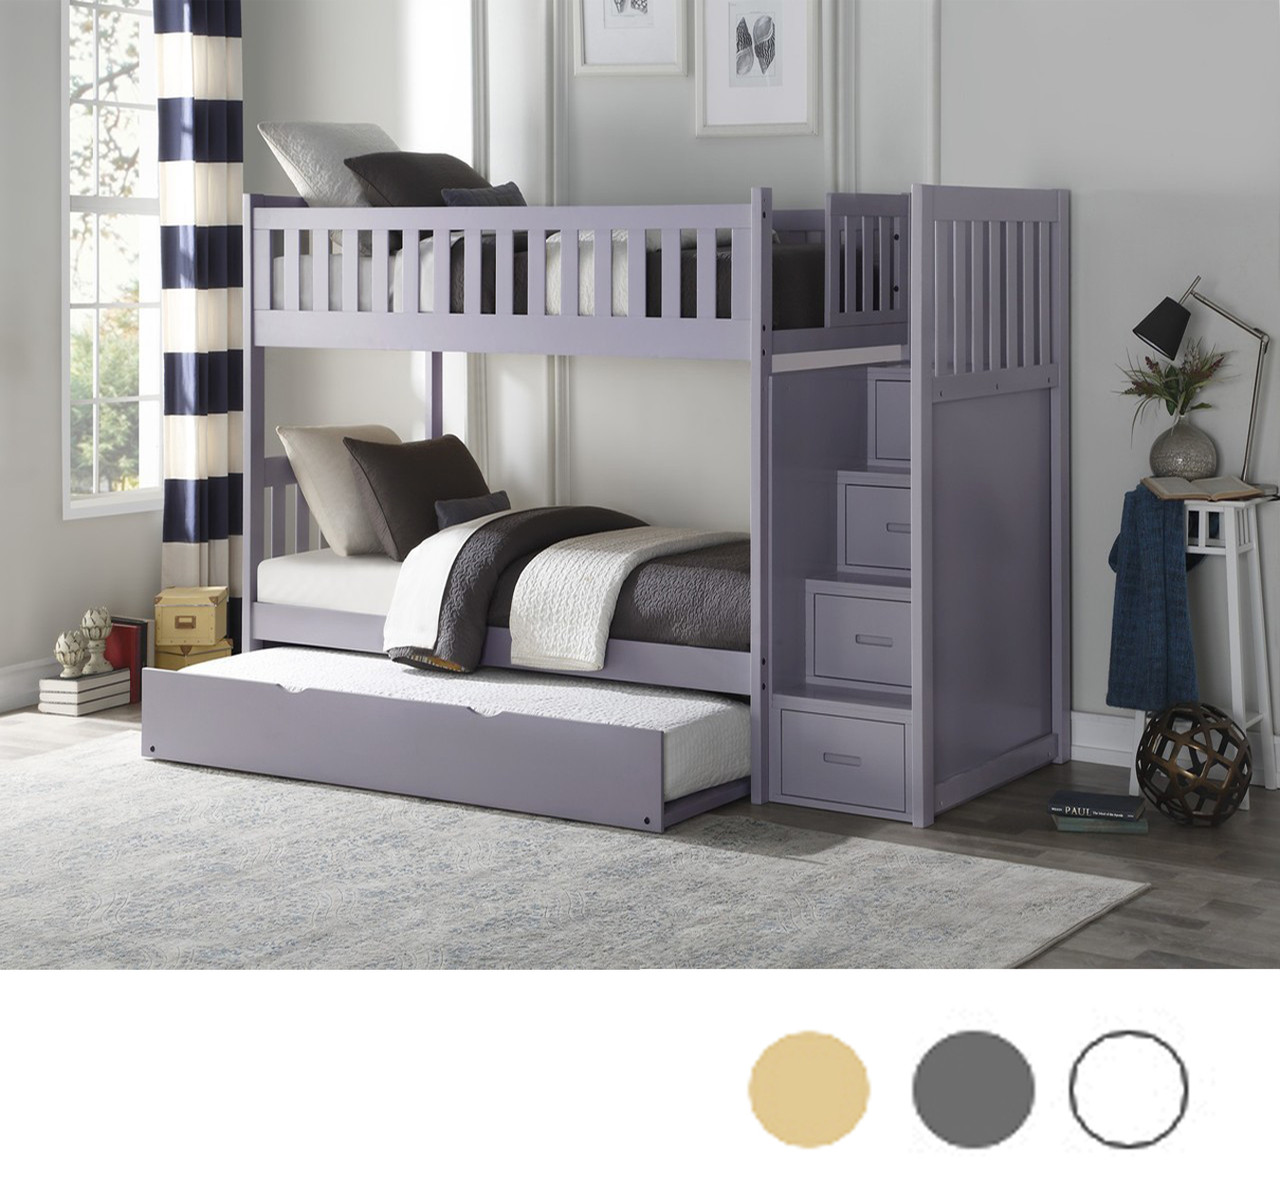 Charlton Pine Twin over Twin Bunk Bed with Stairs   Gray, White